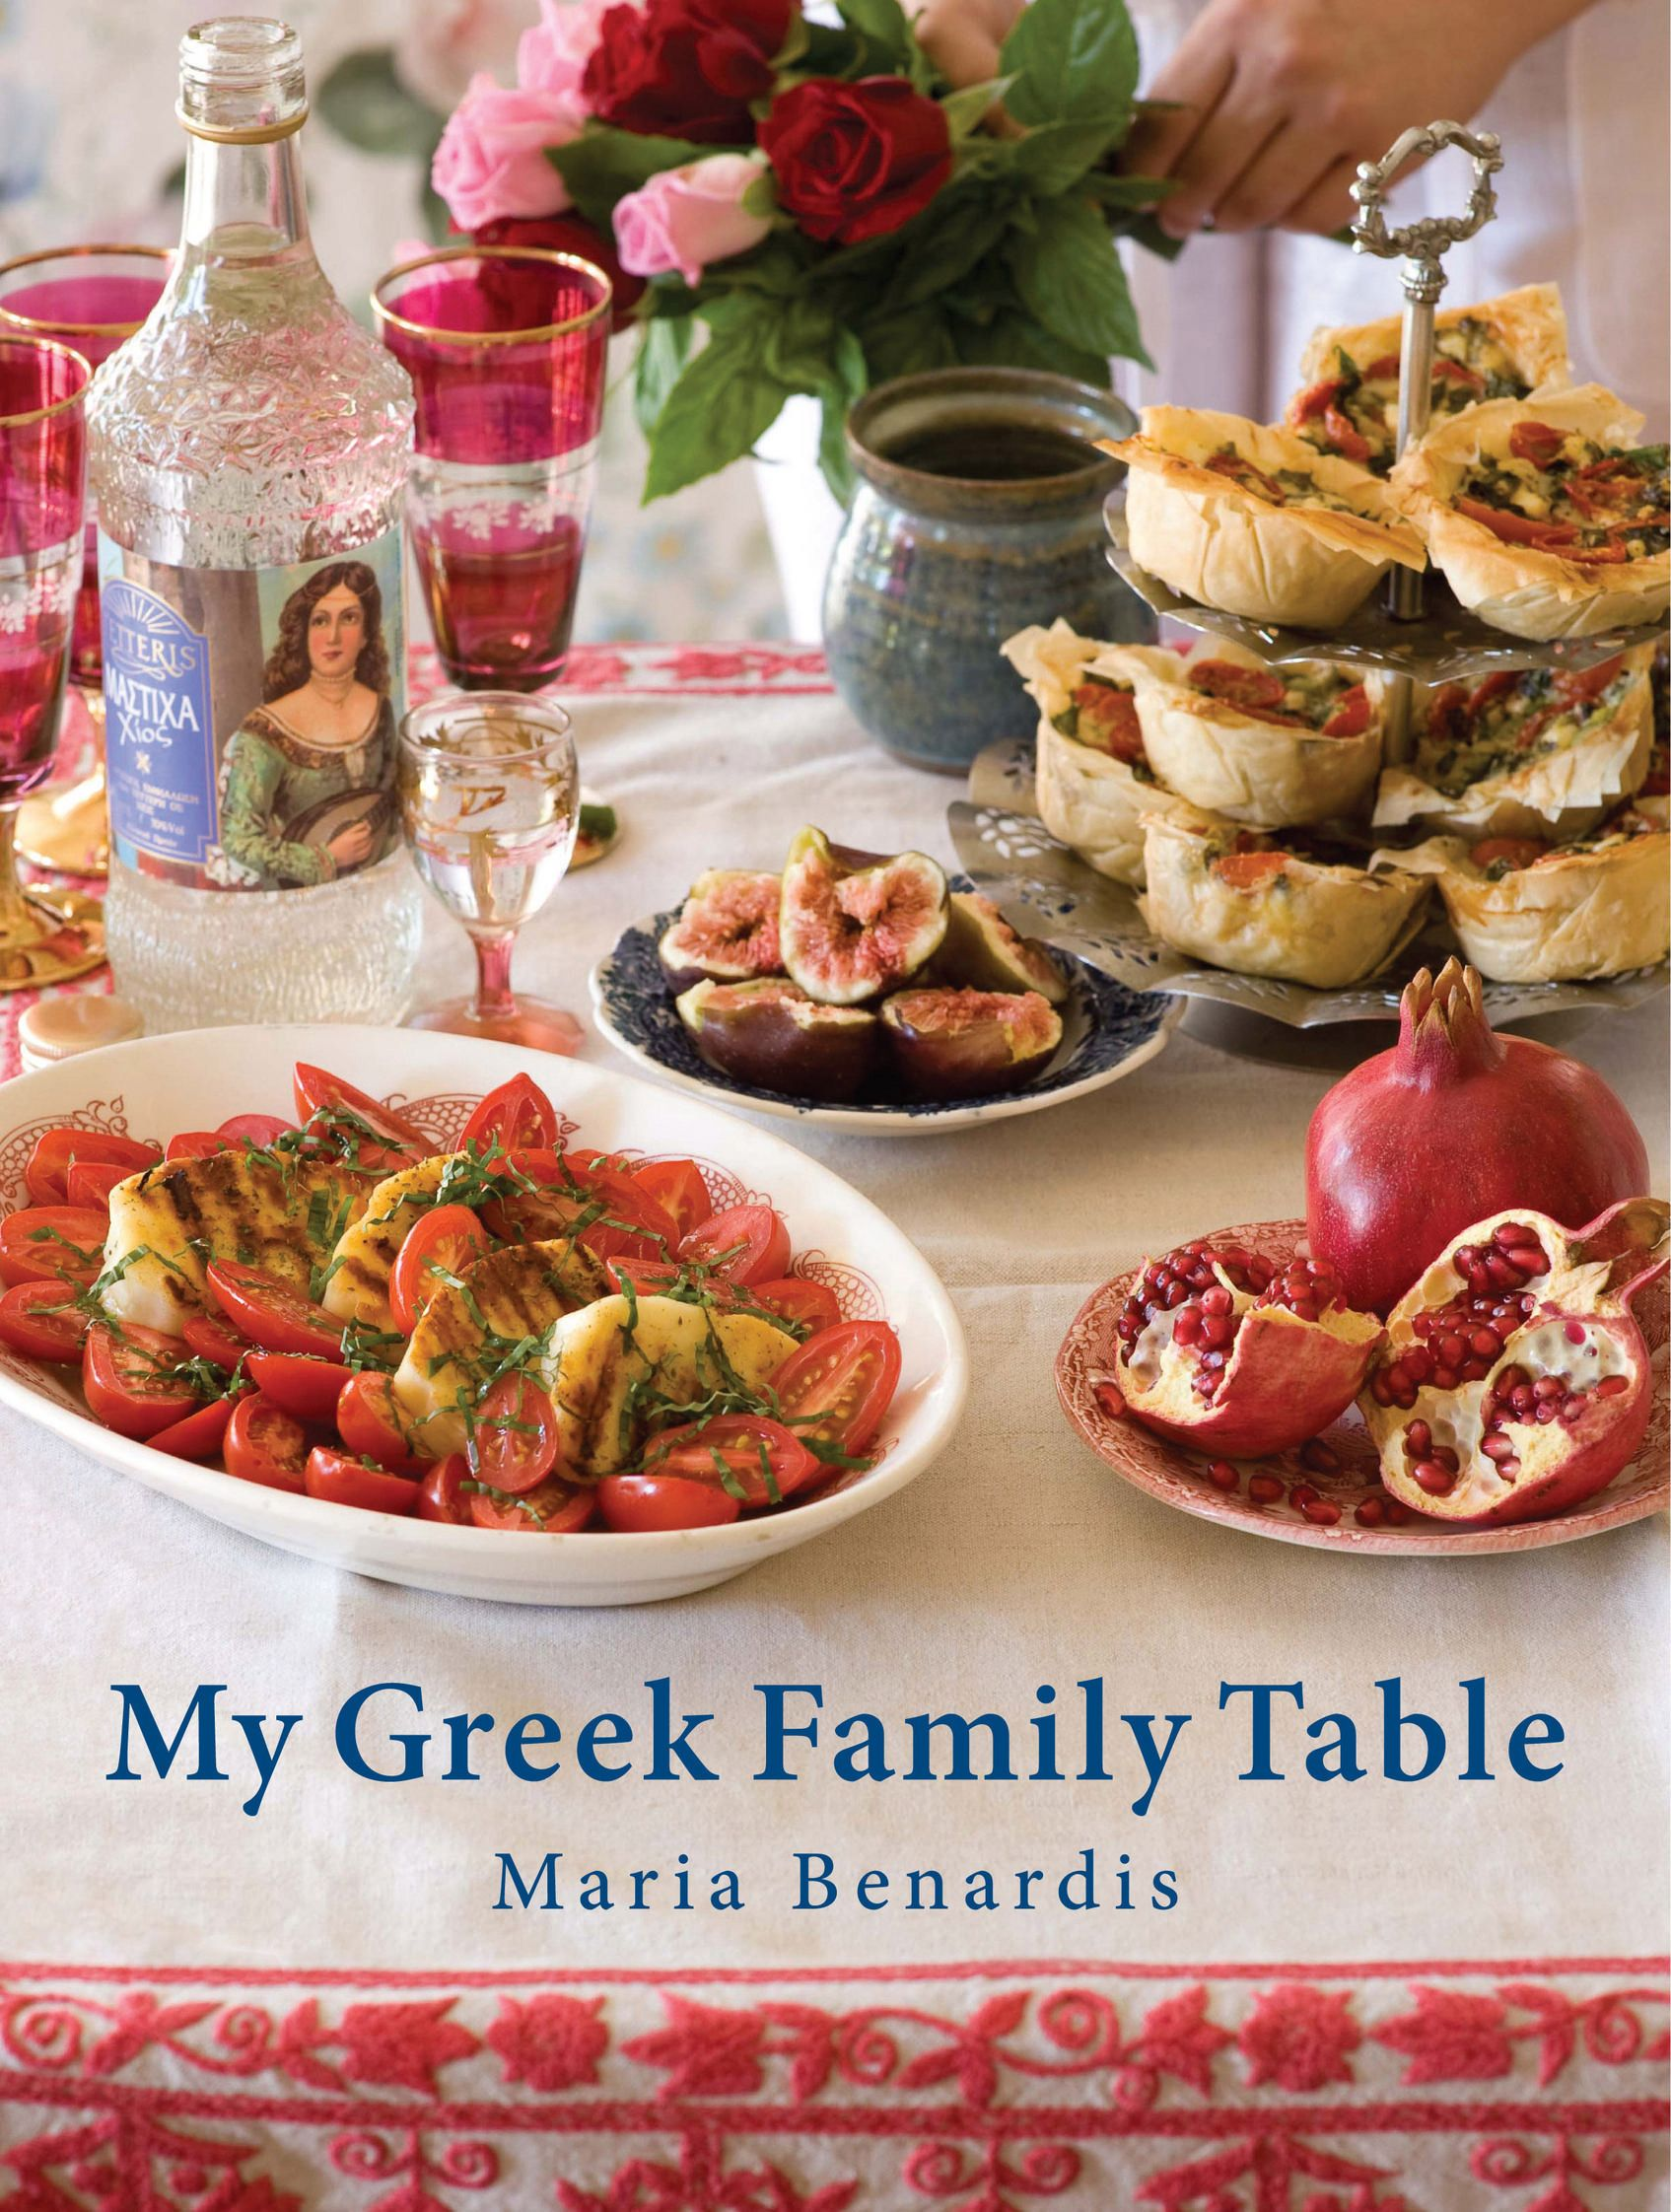 The book cover of my greek family table greek food greek the book cover of my greek family table greek food greek recipes forumfinder Gallery